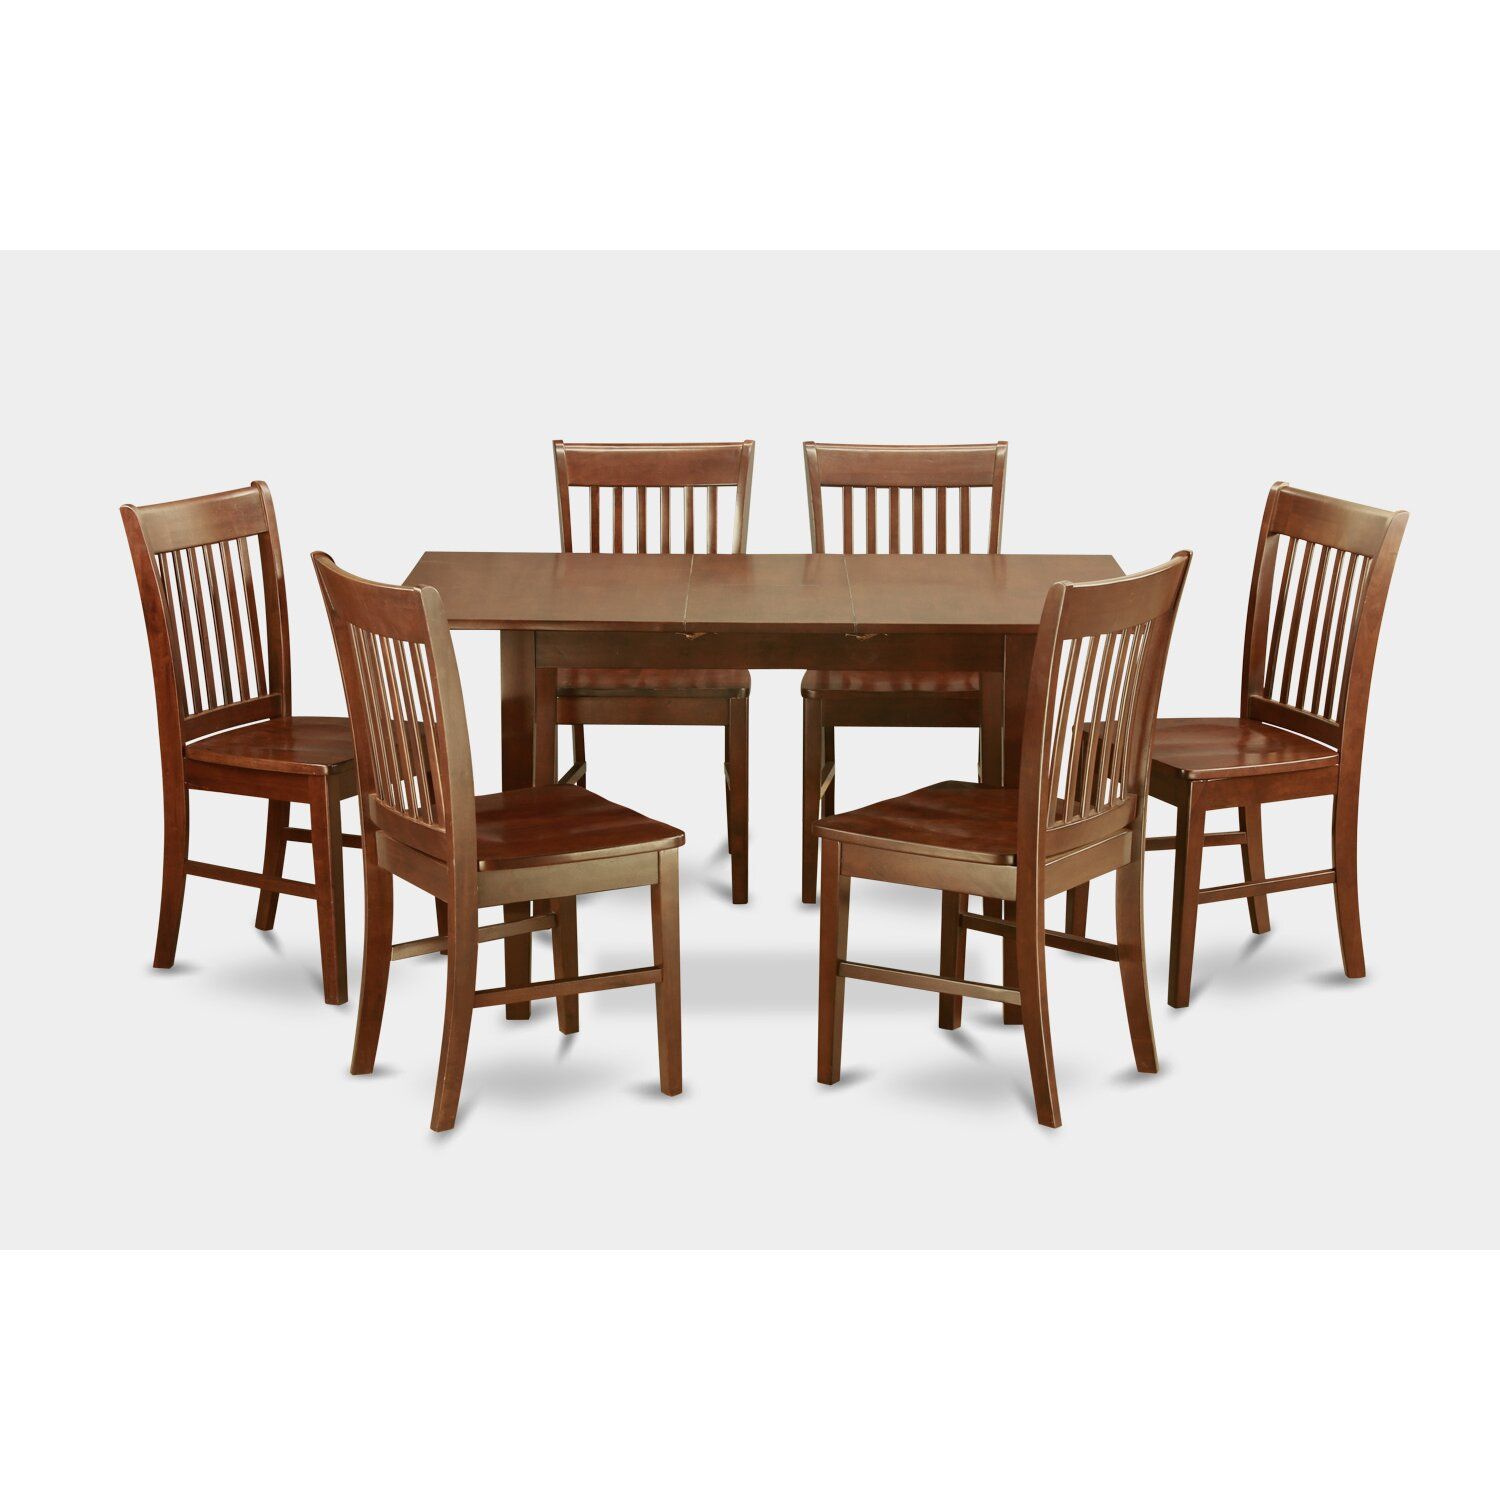 East west norfolk 7 piece dining set reviews wayfair for 7 piece dining room set